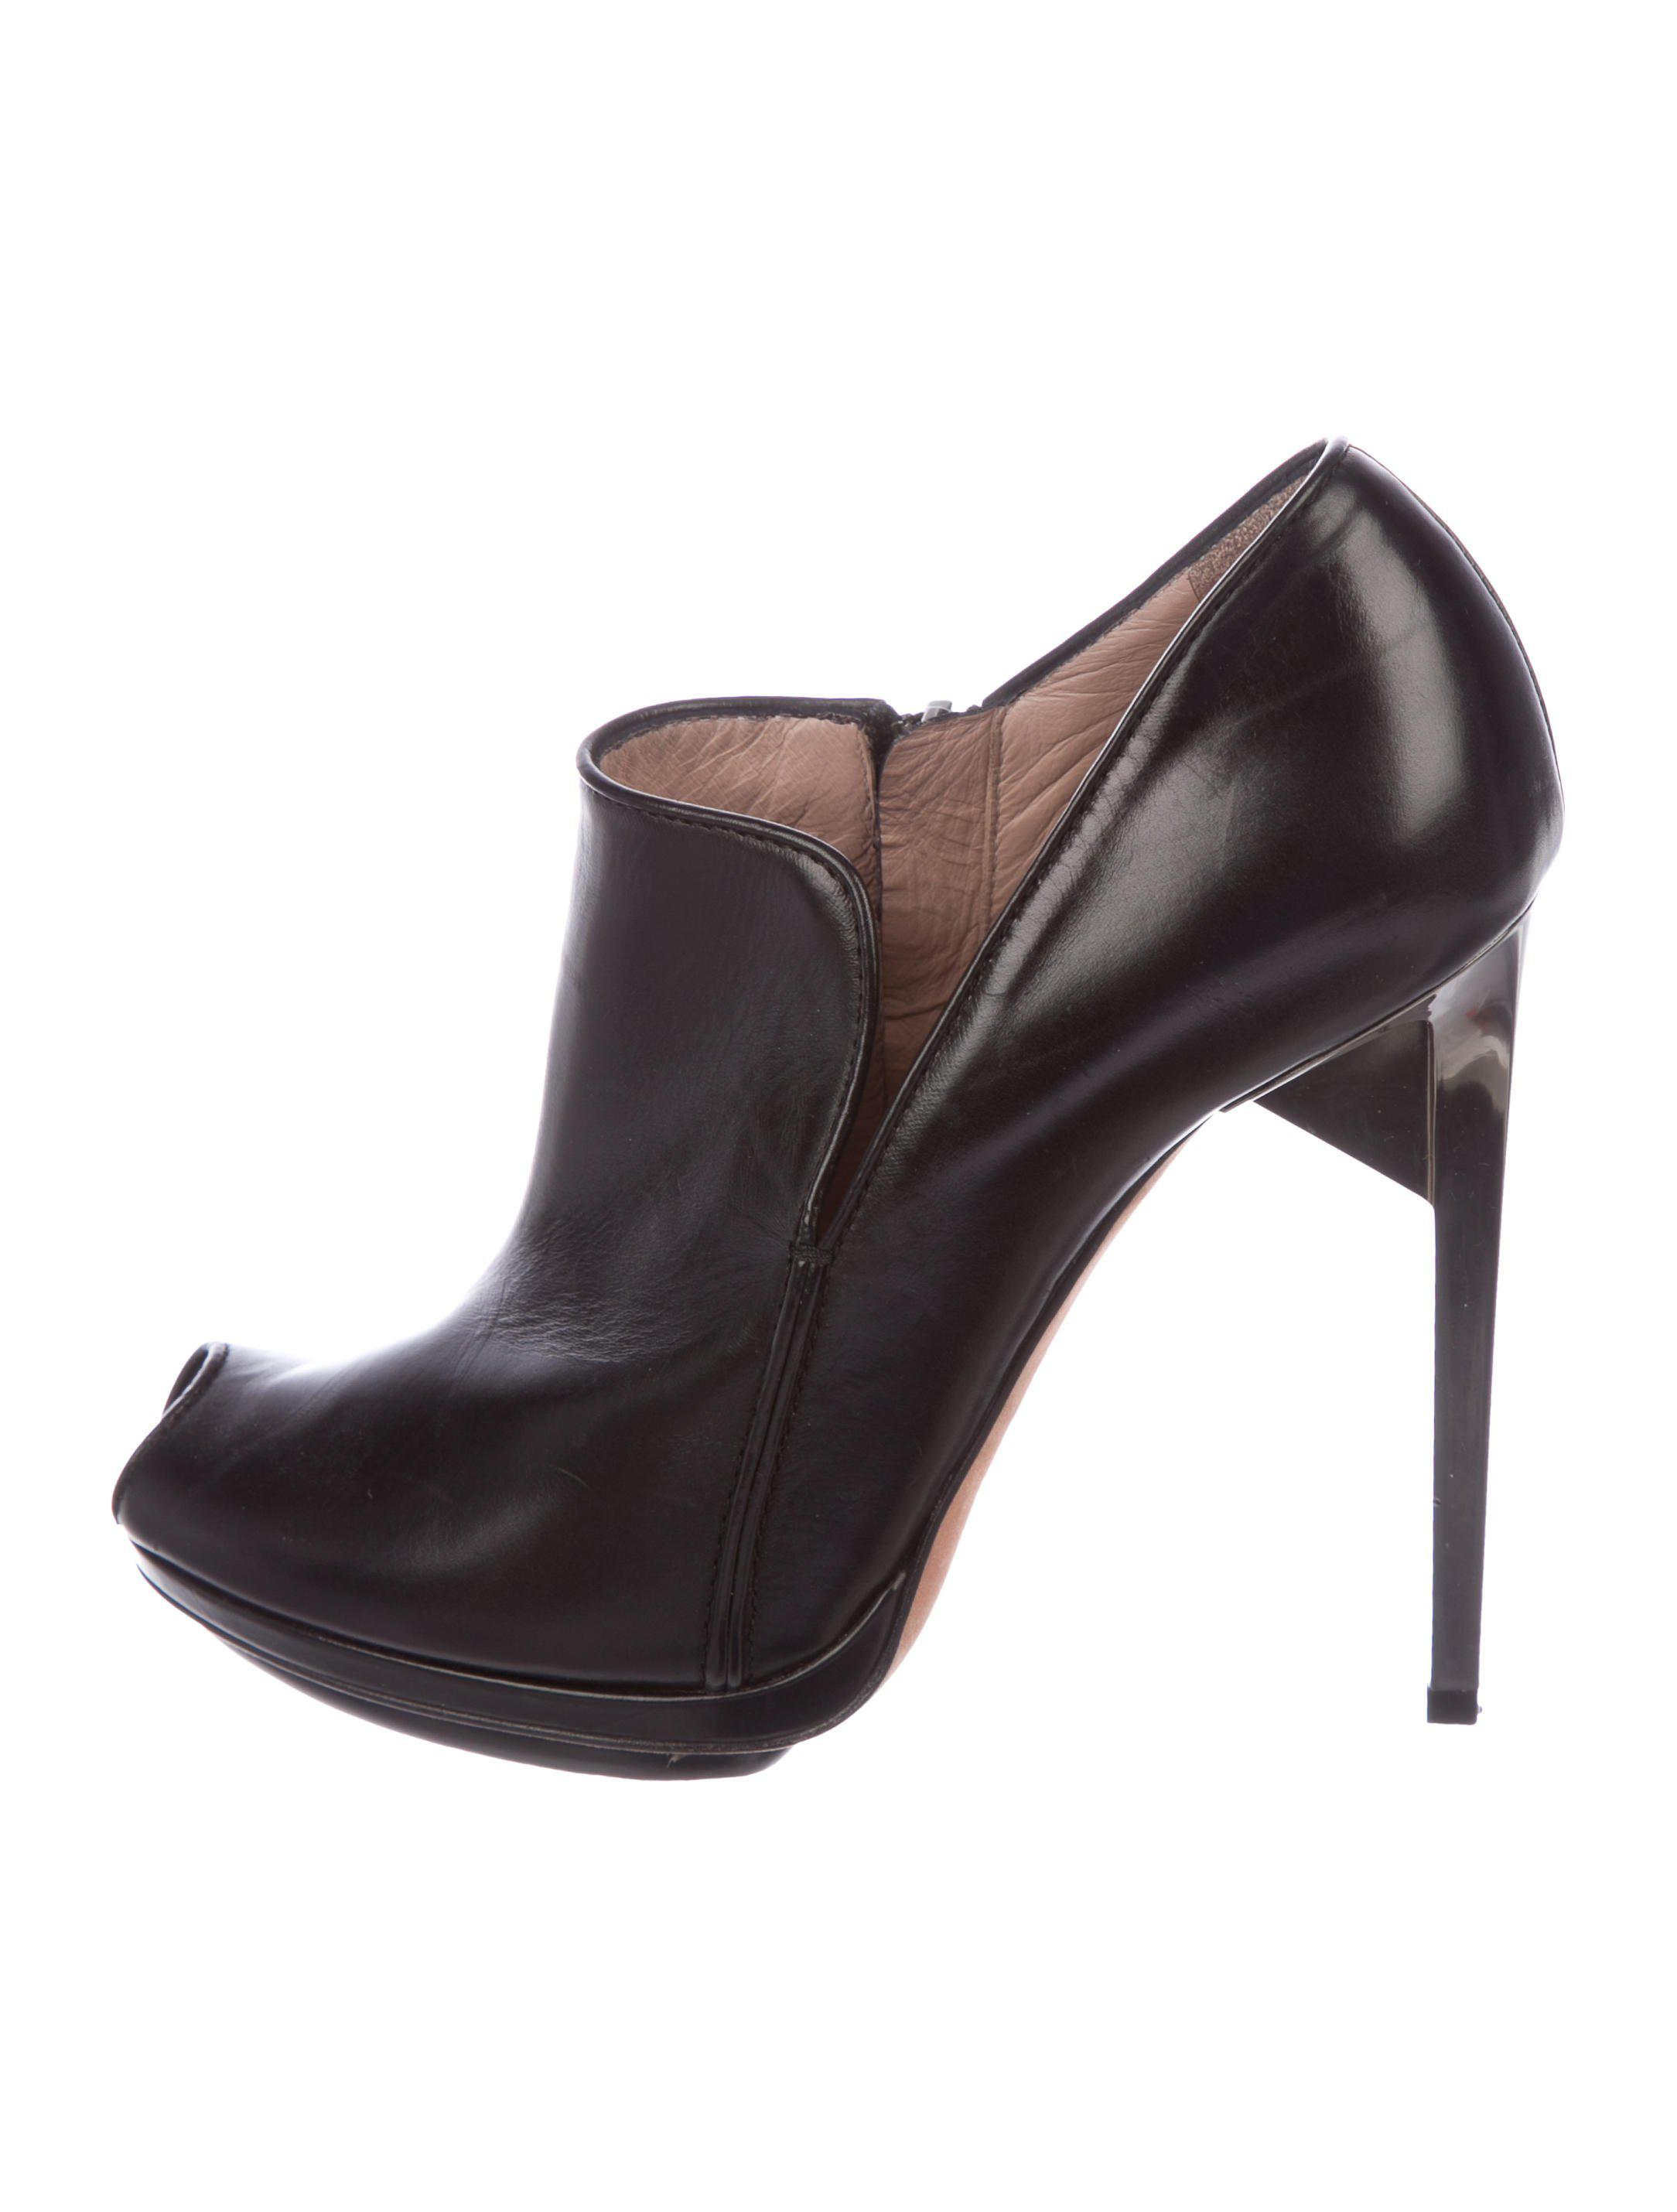 Herve Leger Ponyhair Peep-Toe booties cheap manchester great sale buy cheap supply outlet best store to get reliable free shipping fashion Style FQCRyCZR